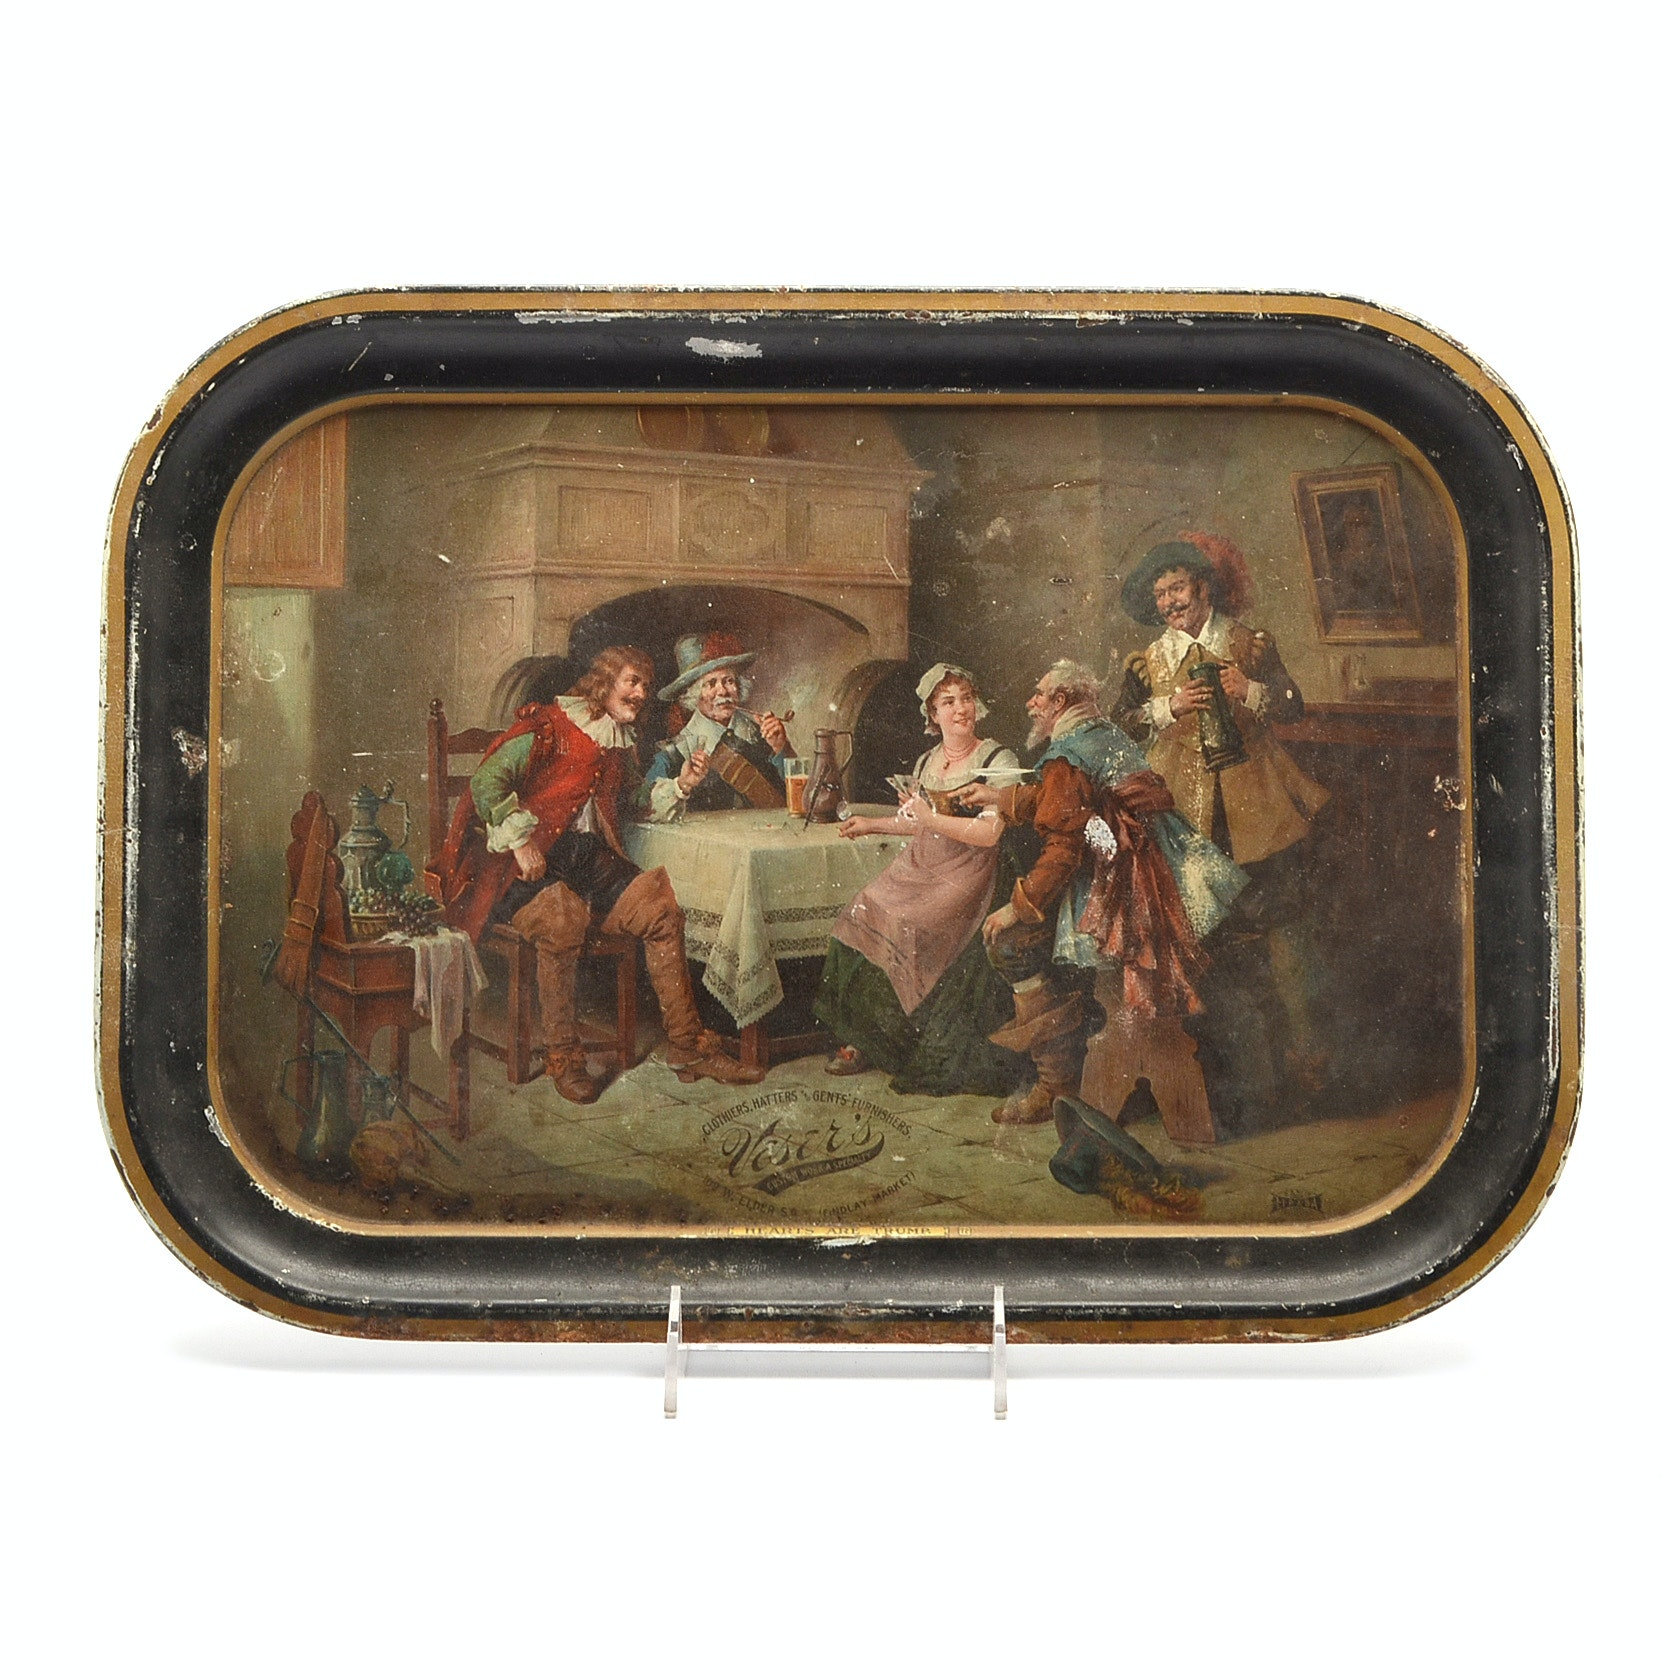 Vintage Veser's Clothiers Tin Advertising Serving Tray